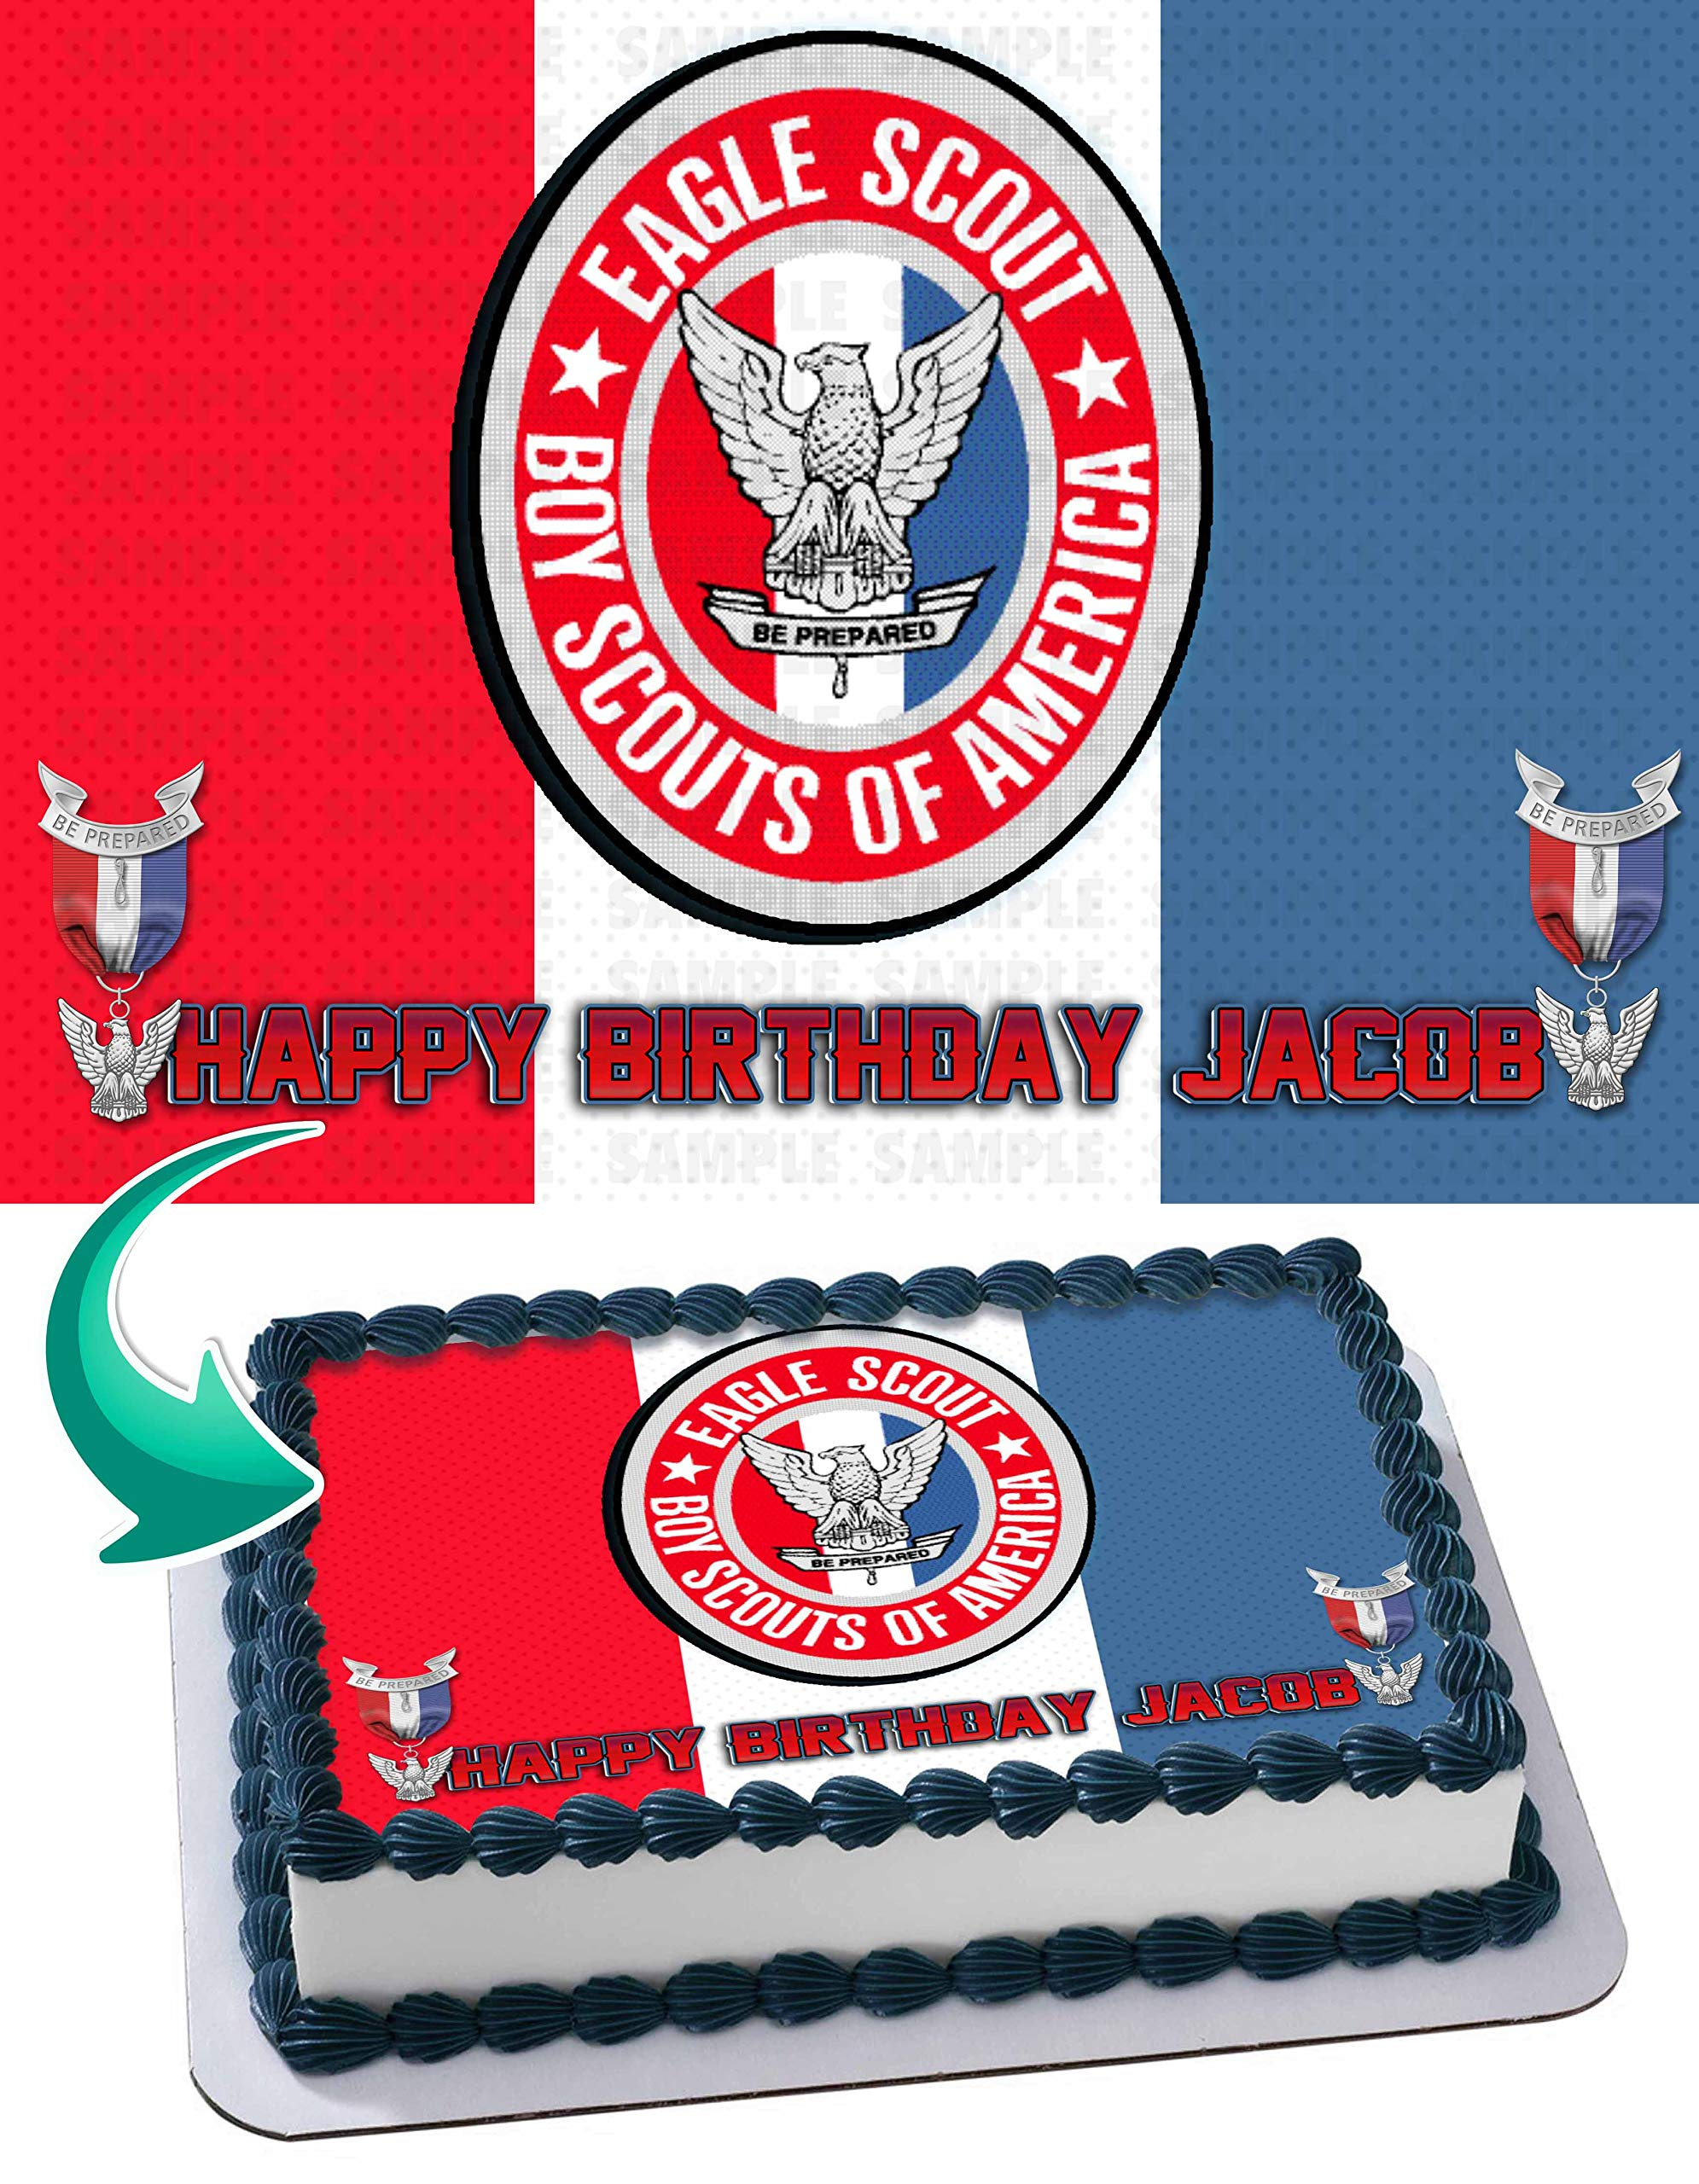 Eagle Scout Edible Cake Image Topper Personalized Birthday 1/4 Sheet Custom Sheet Party Birthday Sugar Frosting Transfer Fondant Image ~ Best Quality Edible Image for Cake